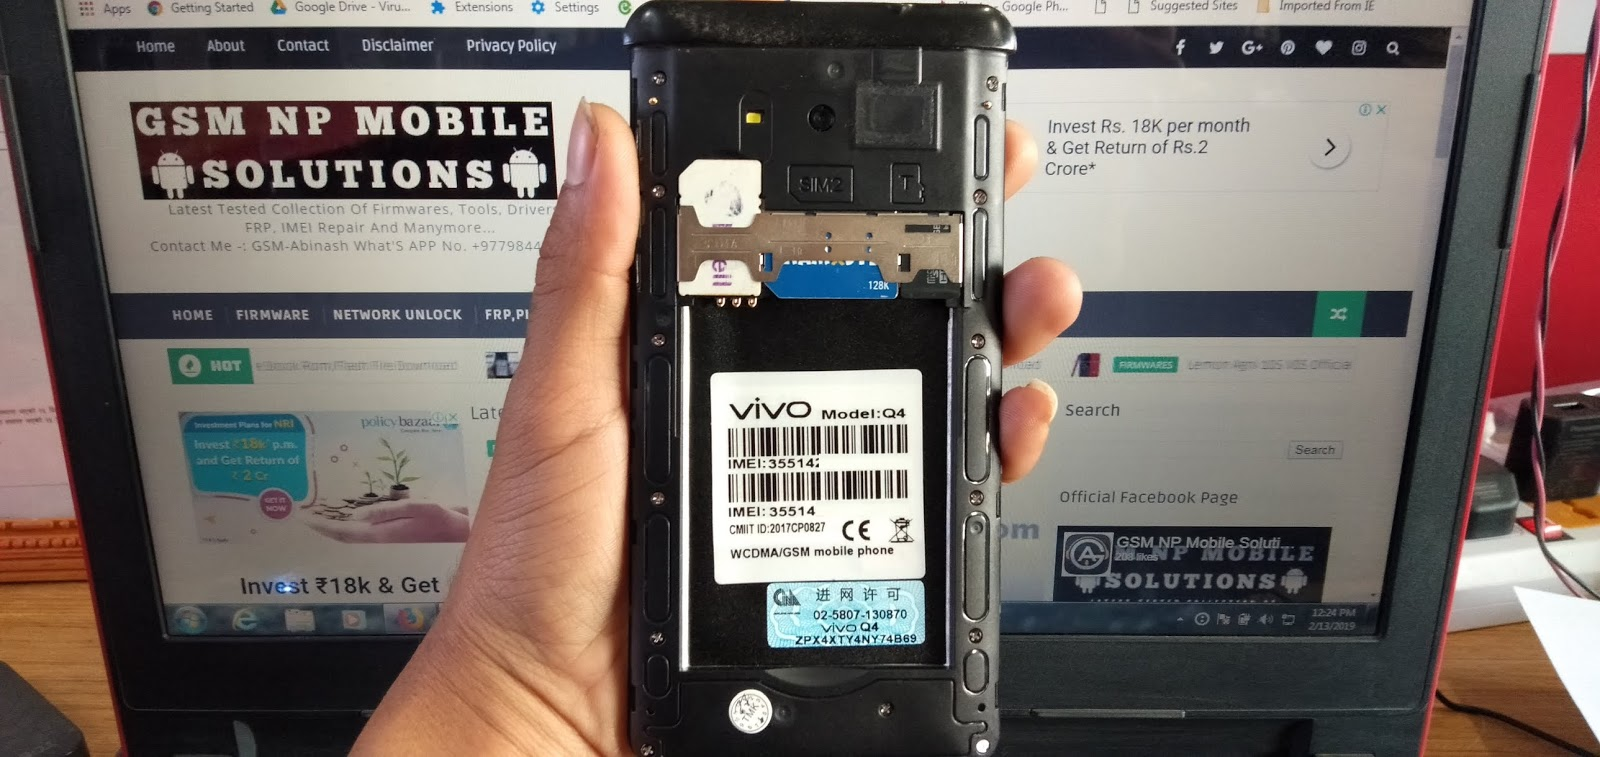 VIVO Q4 Clone MT6572 Firmware Stock Rom/Flash File Download - GSM NP